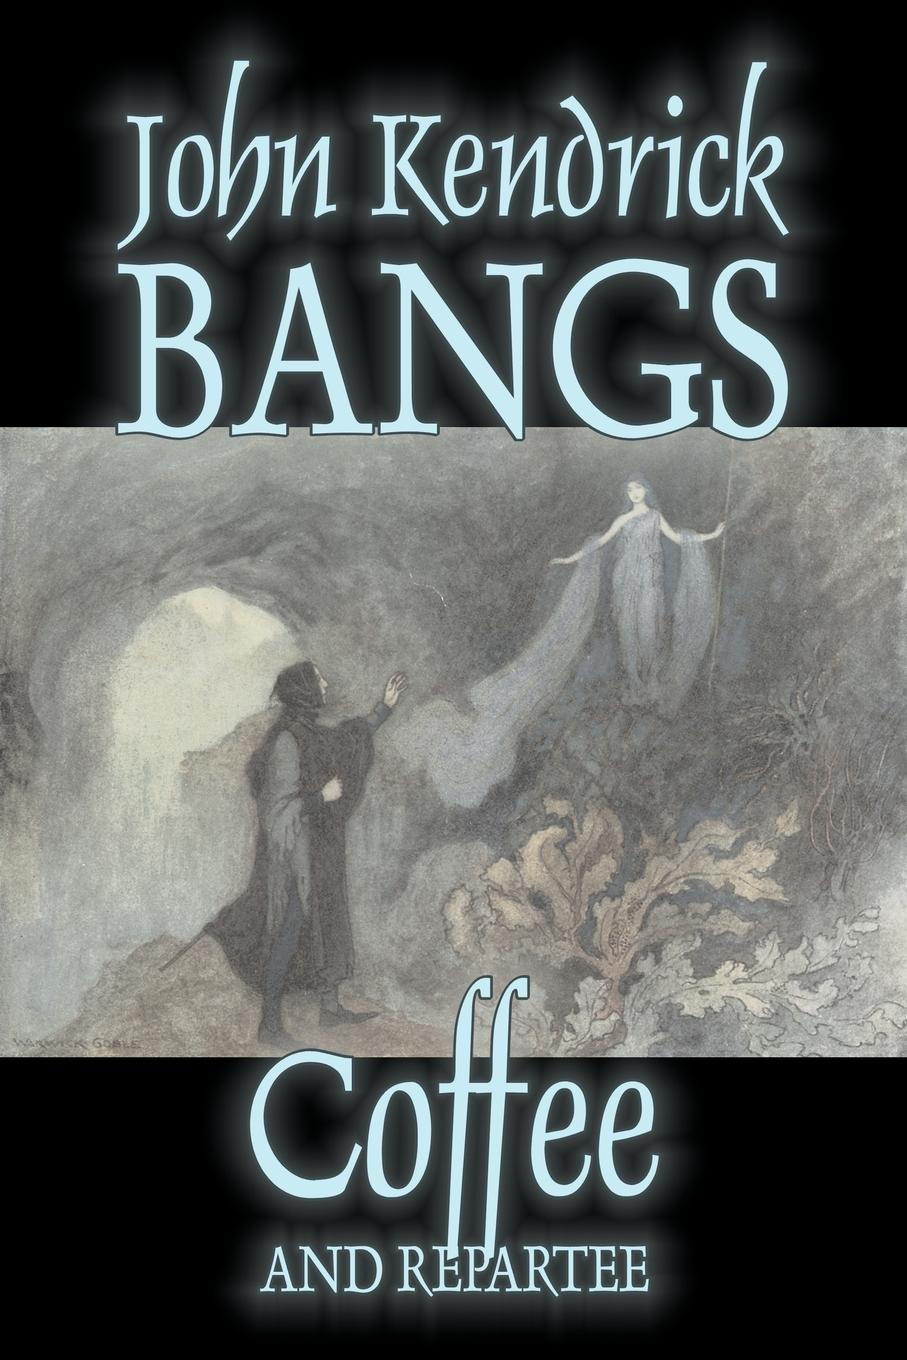 John Kendrick Bangs Coffee and Repartee by John Kendrick Bangs, Fiction, Fantasy, Fairy Tales, Folk Tales, Legends & Mythology цена в Москве и Питере